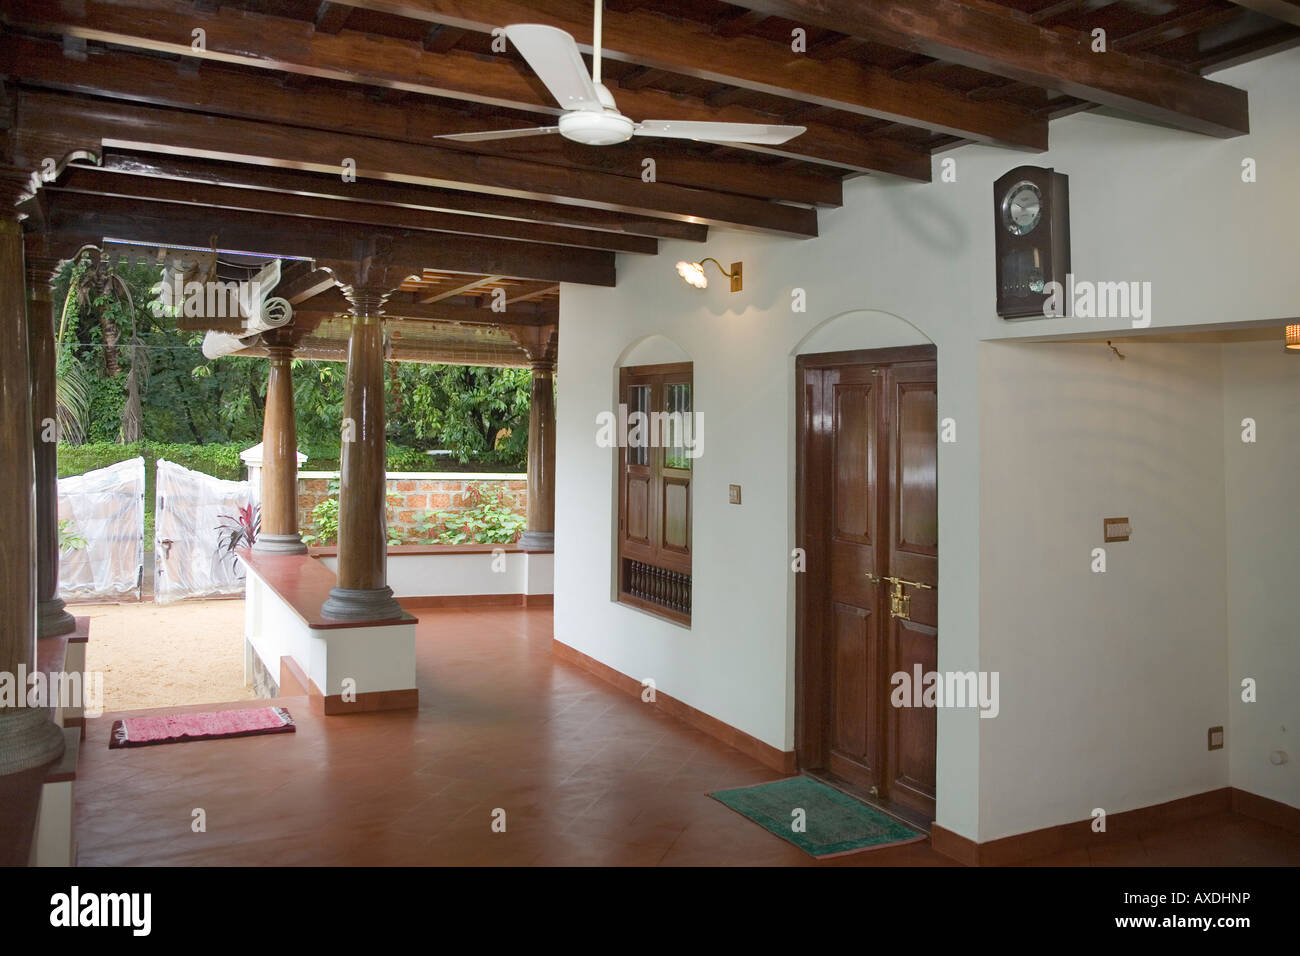 Part Of Airy Verandah Of Keralite Bungalow Styled After